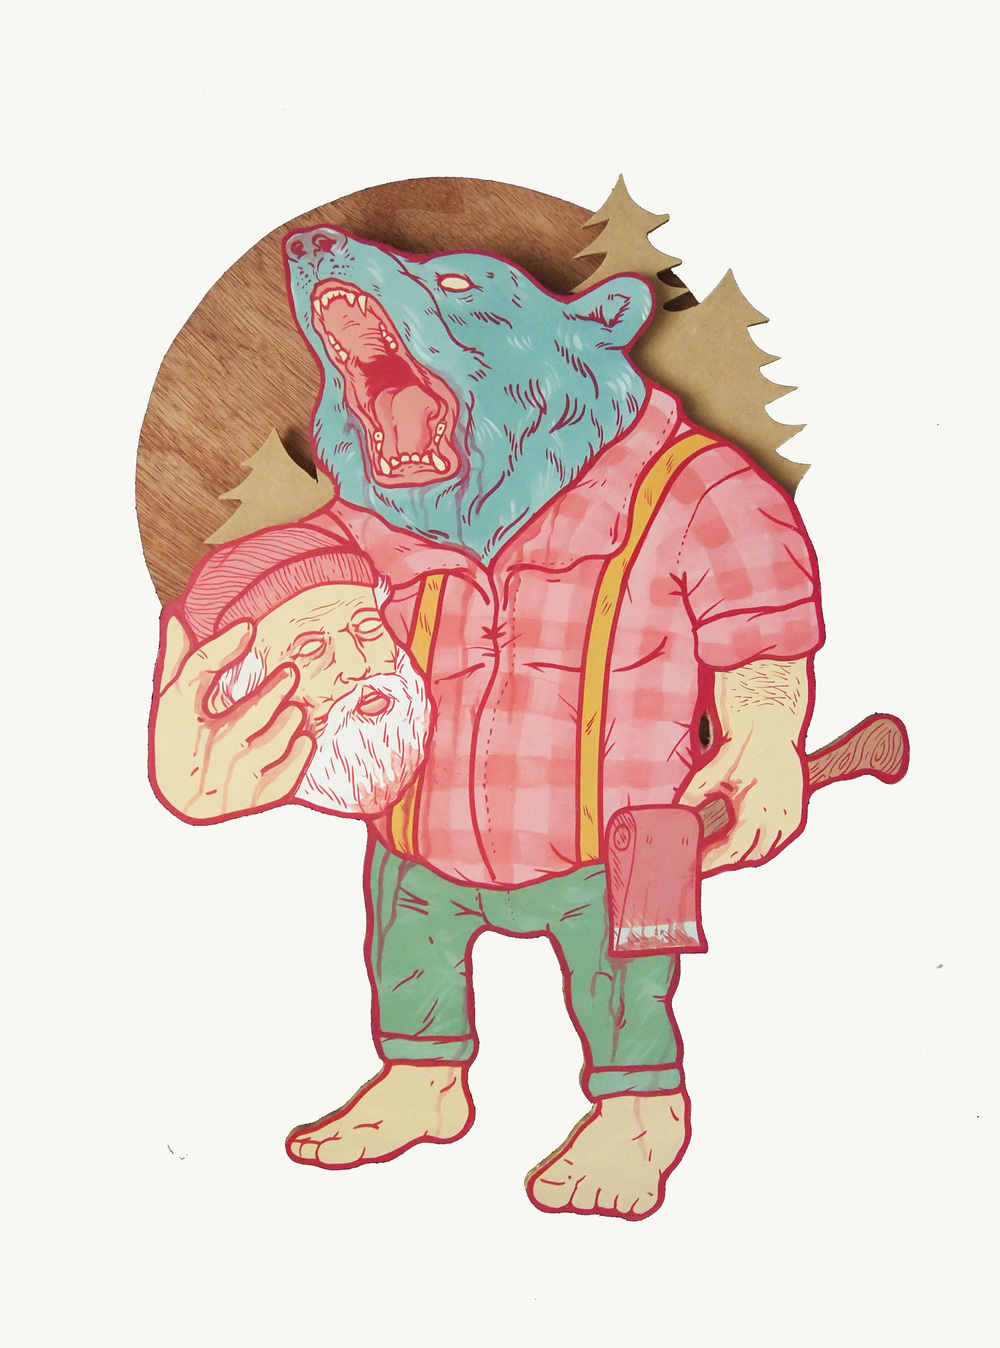 Revenge on Paul Bunyan , 2012   [private collection Brooklyn  , NY]   Acrylic on Wood   24 x 18 in.